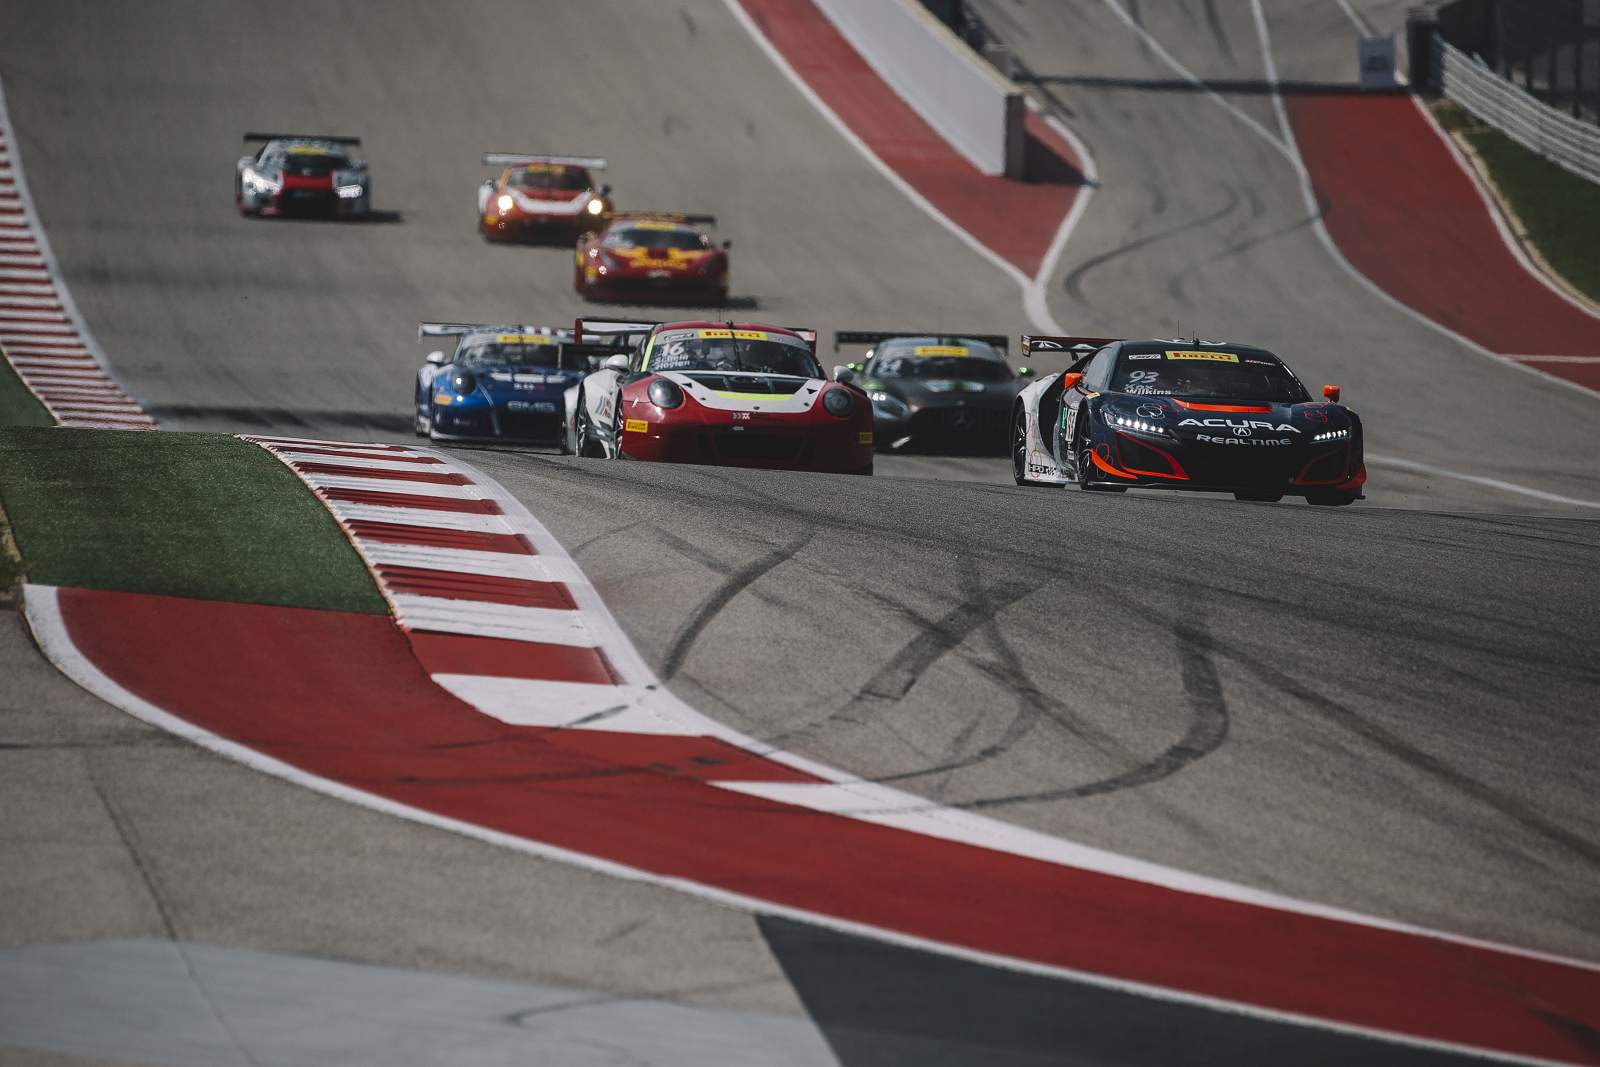 peter-kox-realtime-racing-pirelli-world-challenge-cota--030